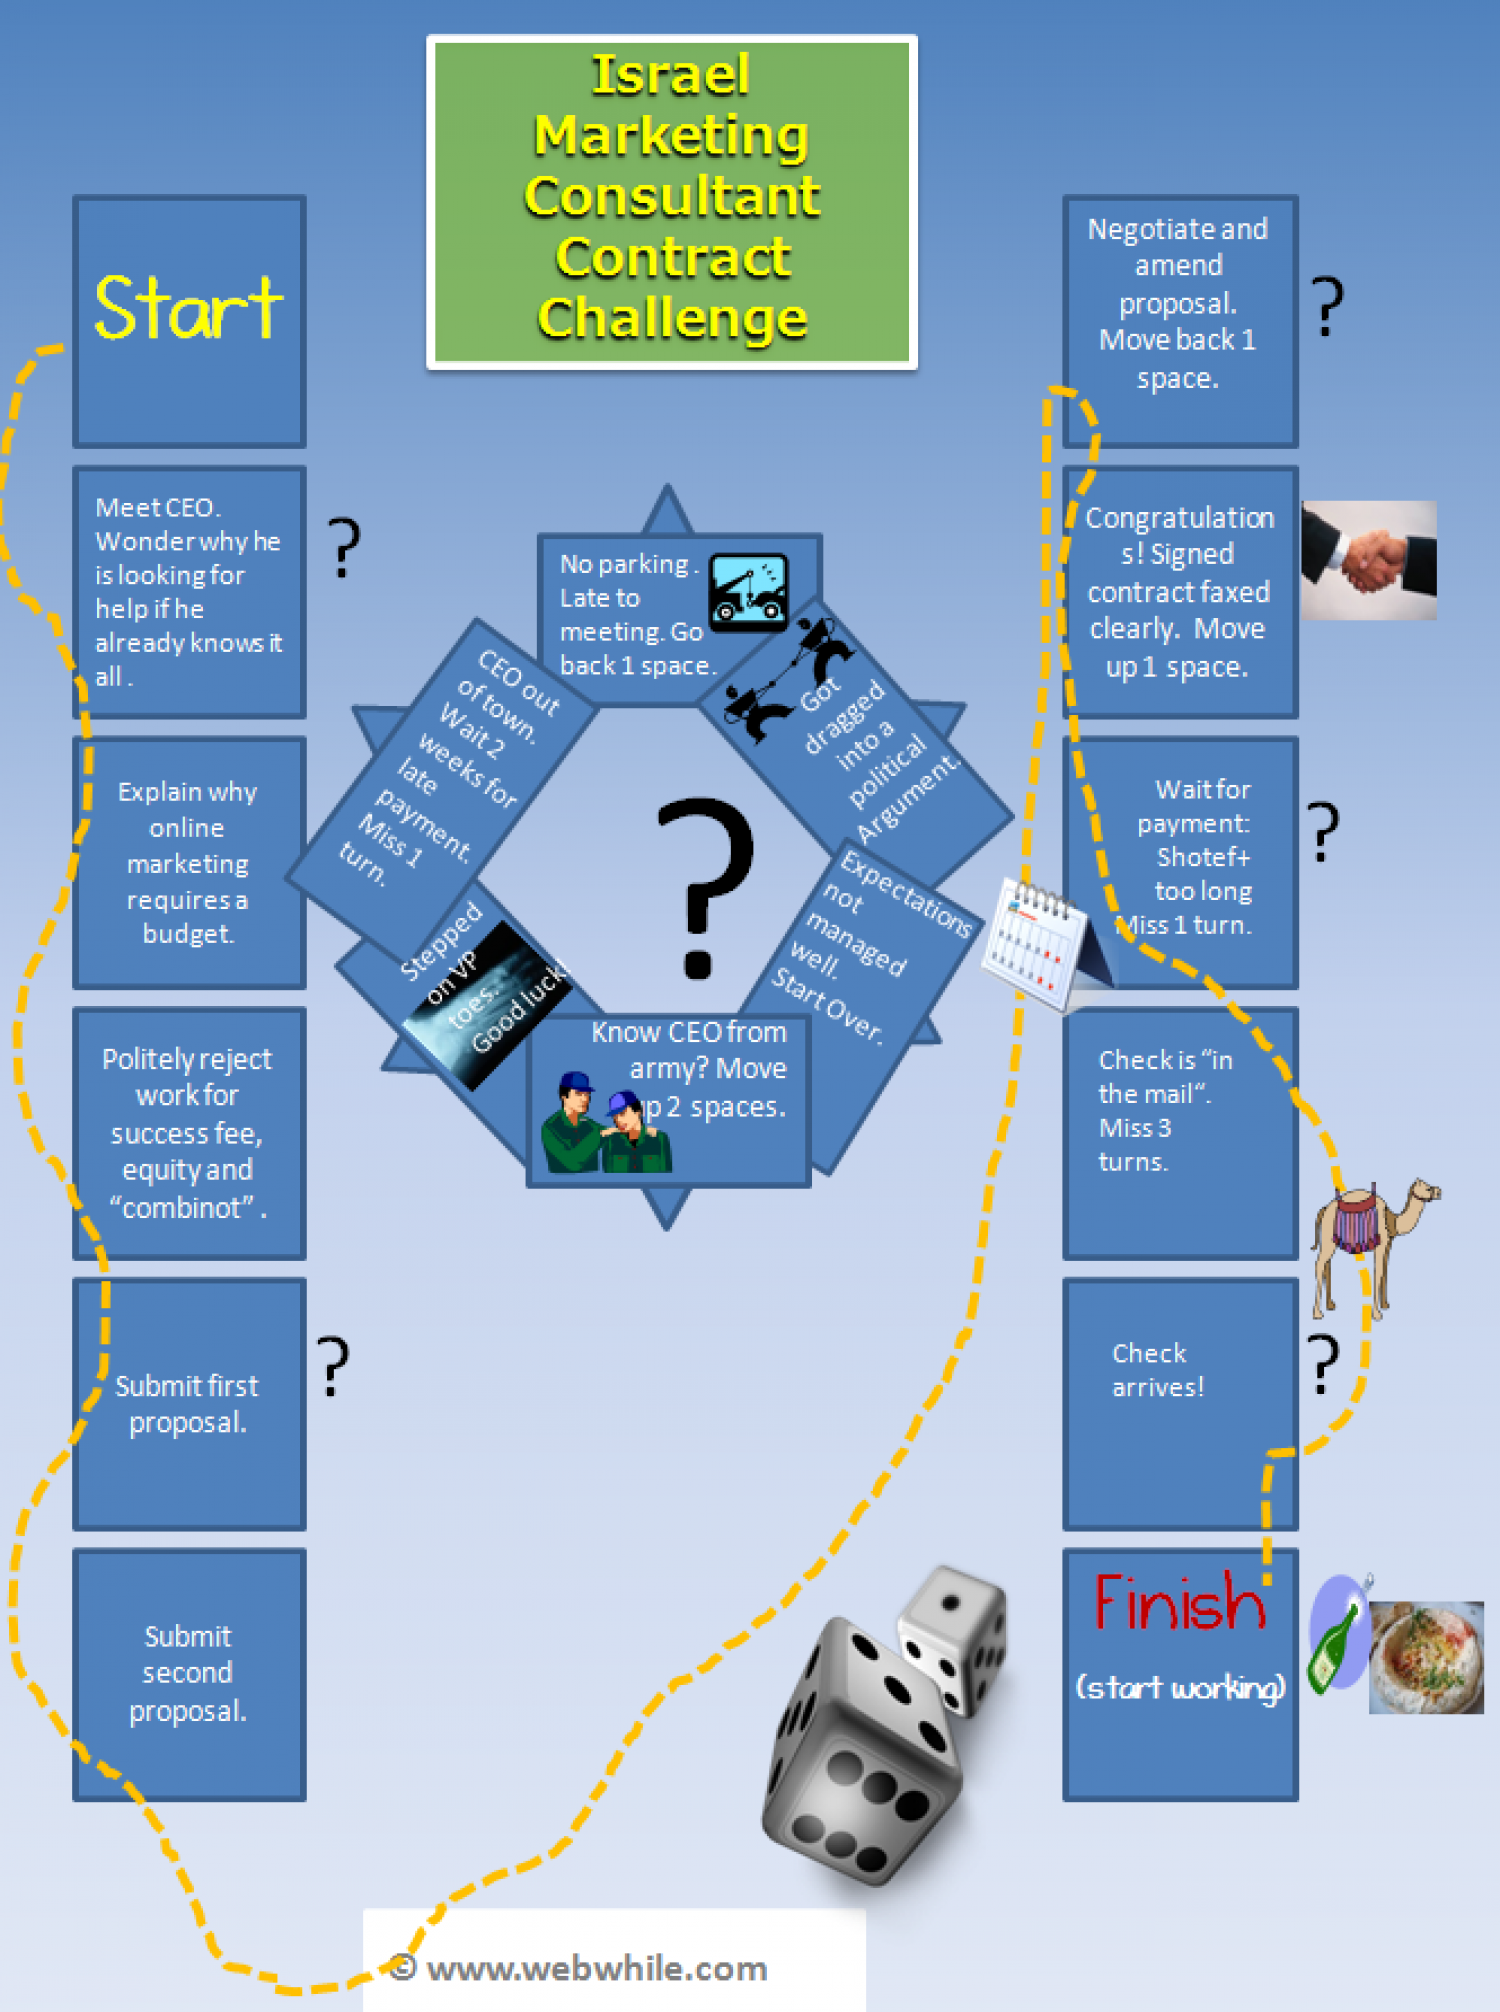 Israel Marketing Consultant Contract Challenge Infographic